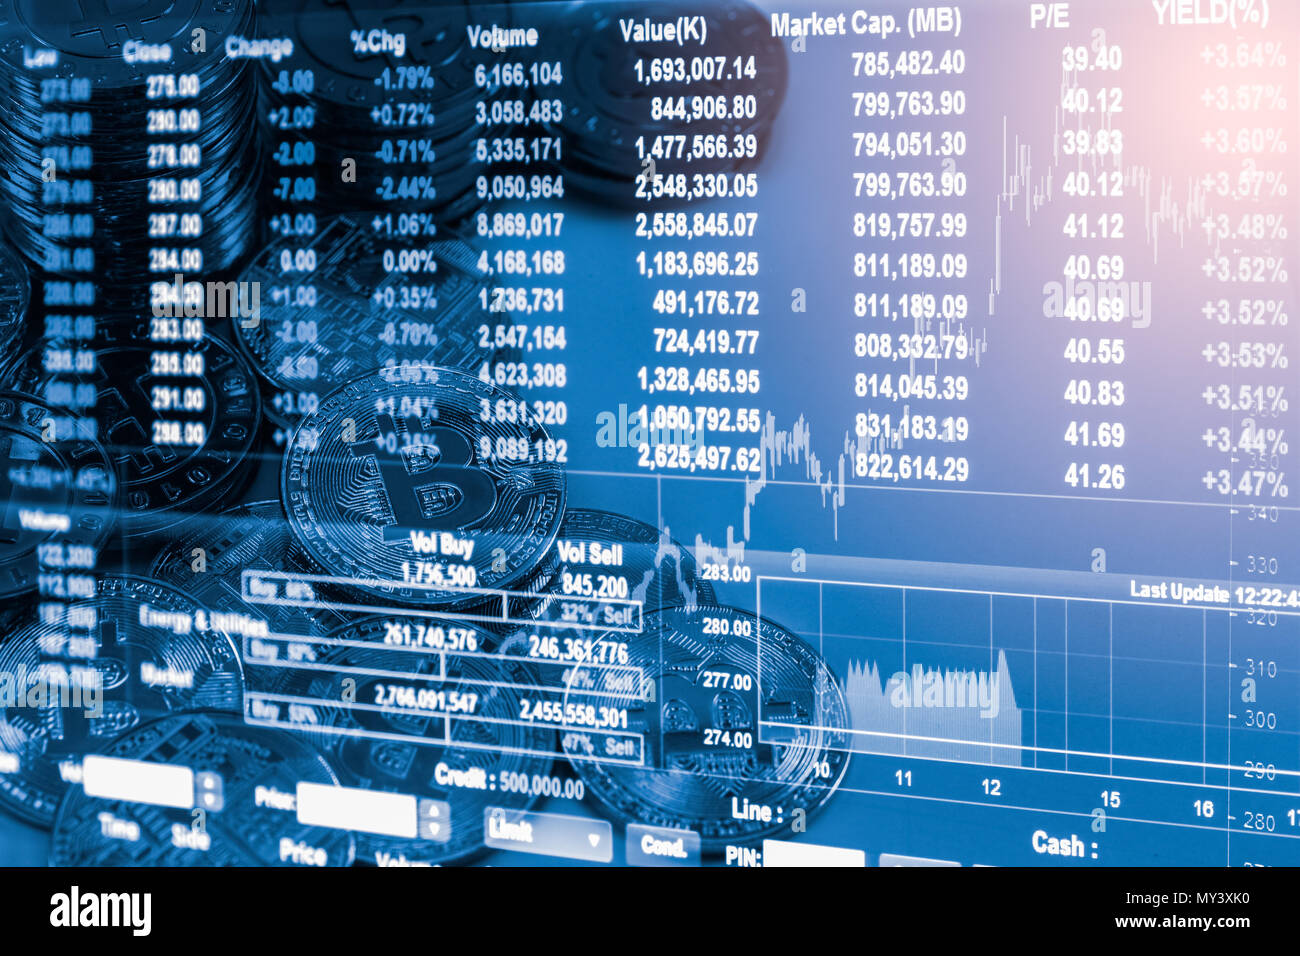 Modern way of exchange and bitcoin is convenient payment in global economy market. Virtual digital currency and financial investment trade concept. Cr - Stock Image